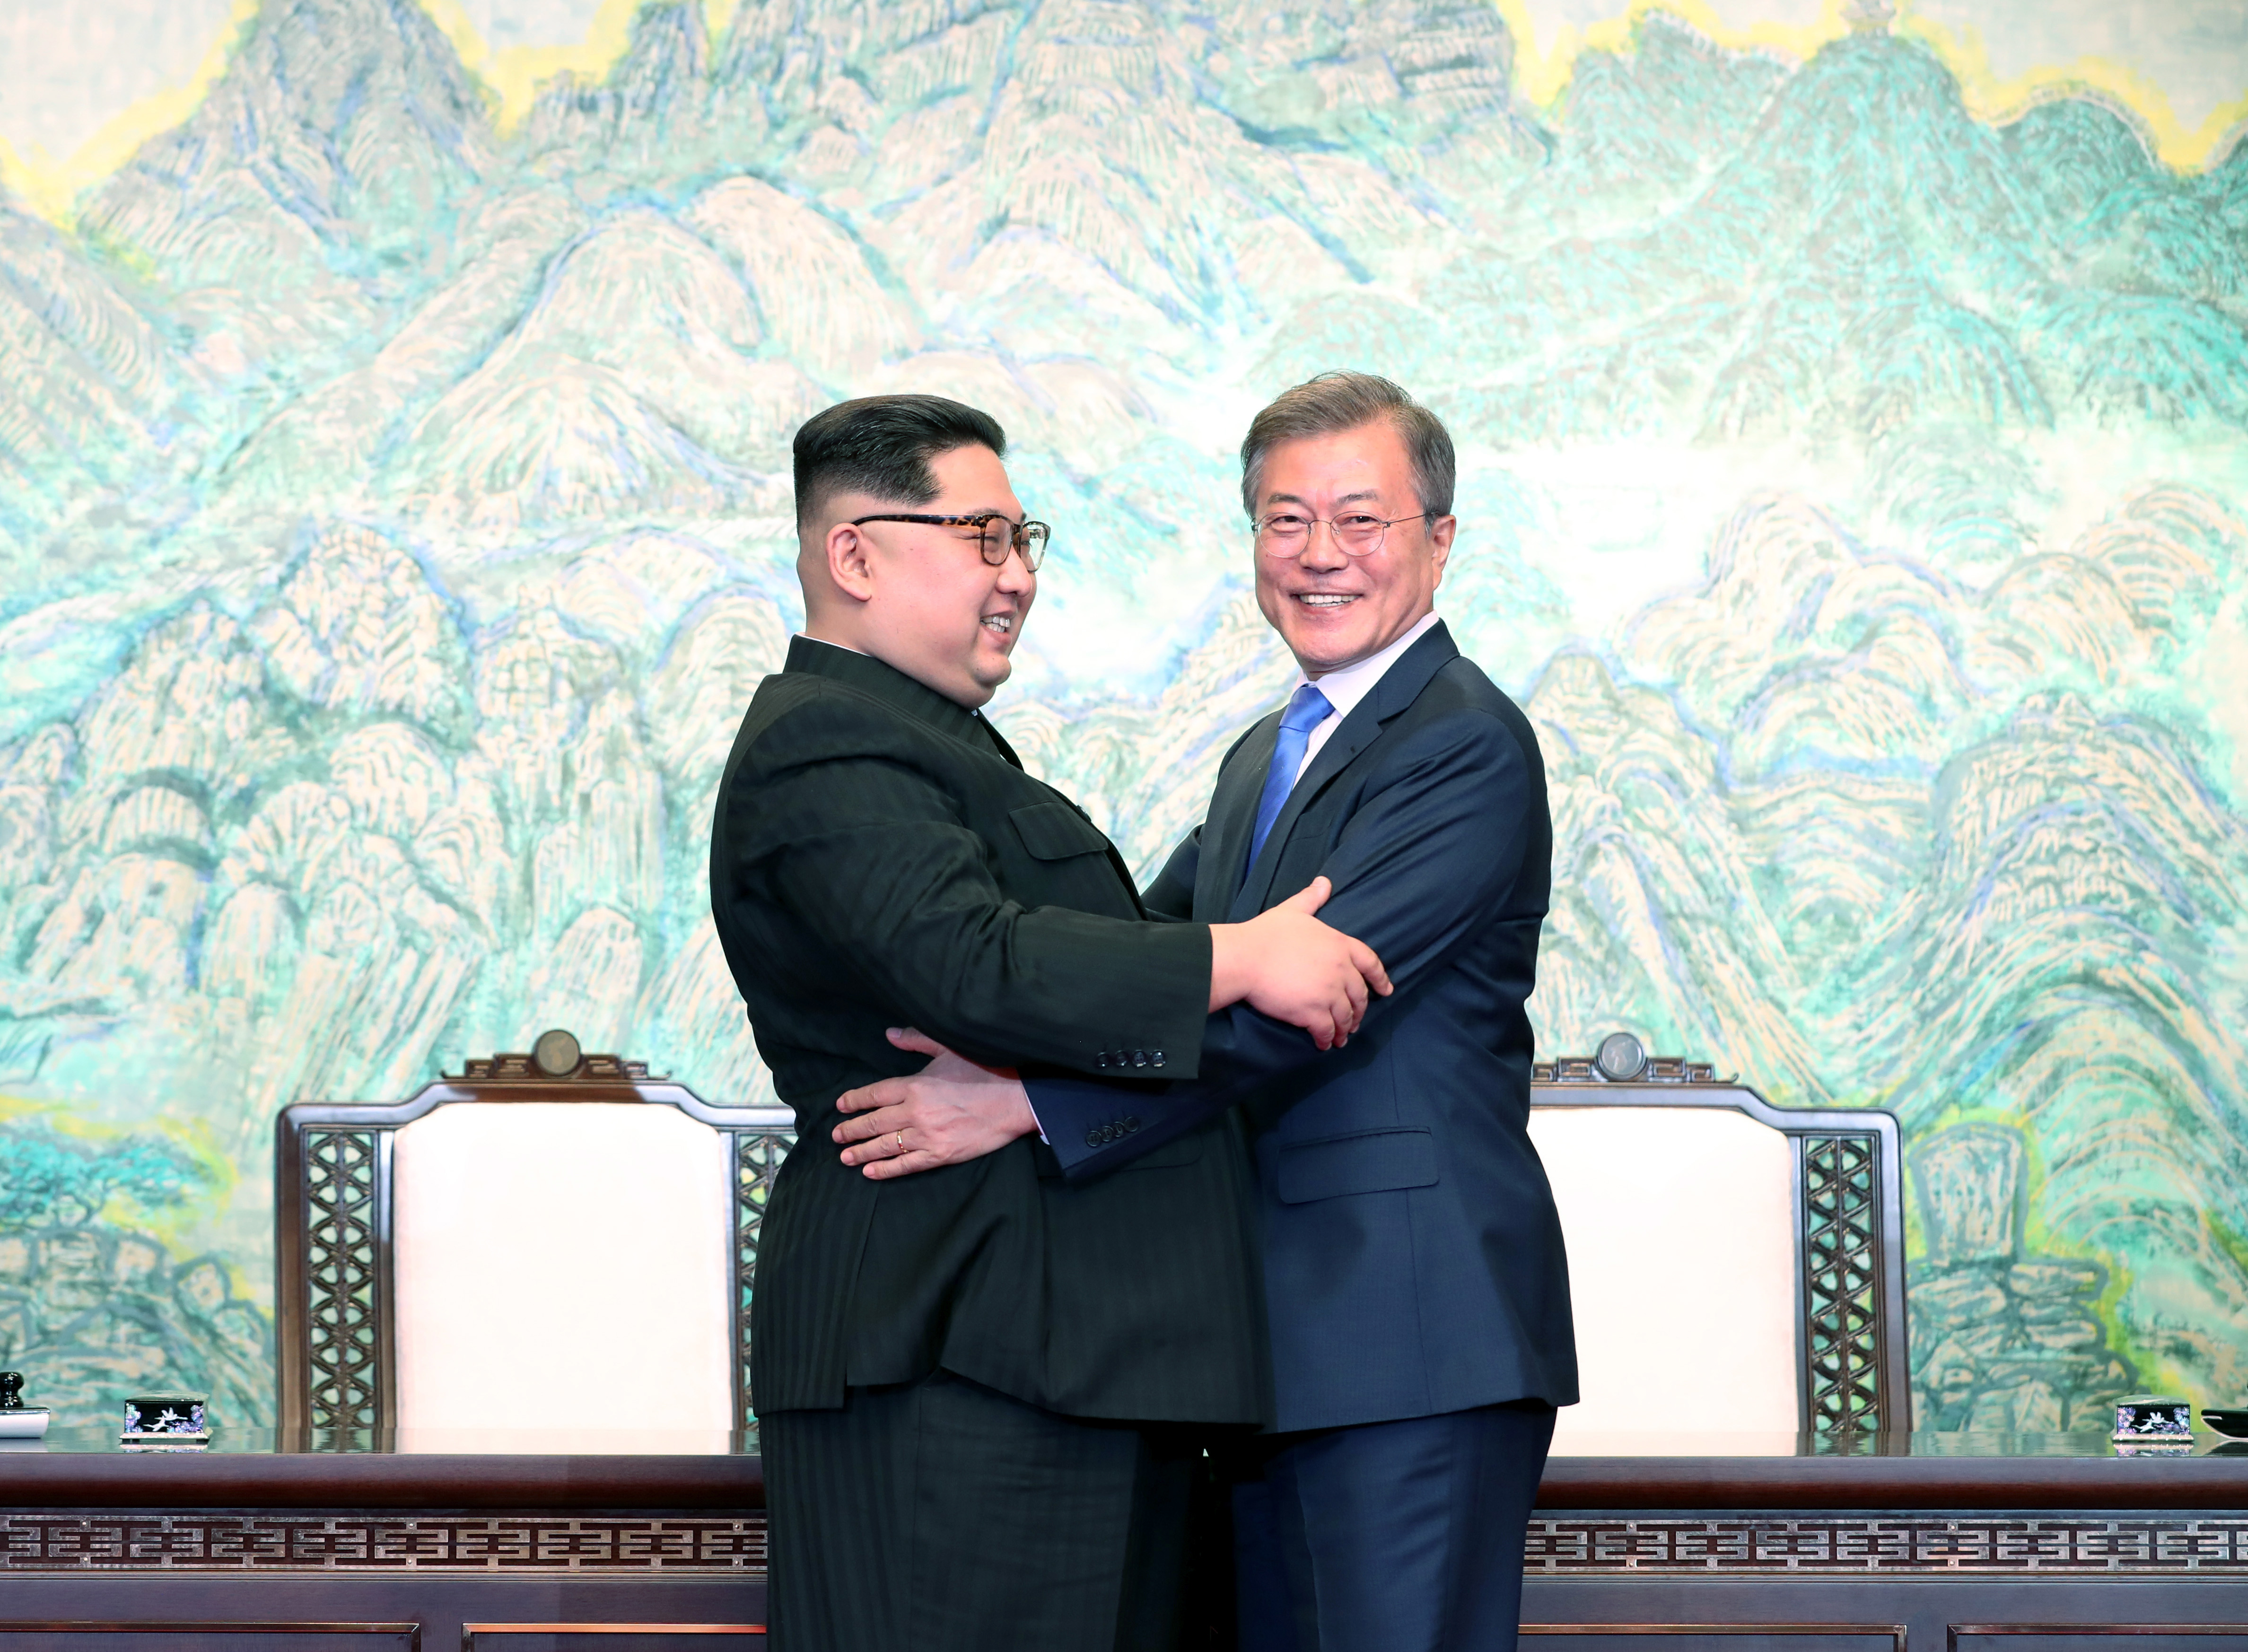 North Korean leader Kim Jong Un and South Korean President Moon Jae-in embrace after signing the Panmunjom Declaration for Peace, Prosperity and Unification of the Korean Peninsula during the Inter-Korean Summit.